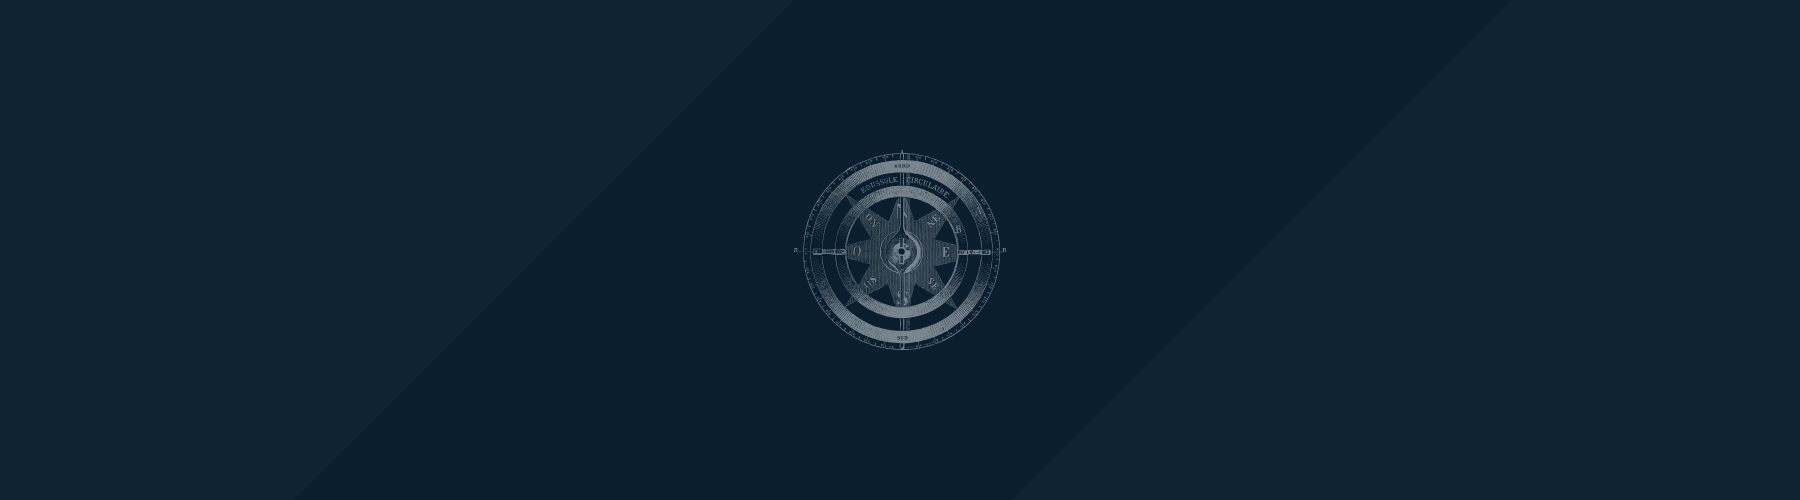 Dark blue background with a compass image overlaying a single stripe